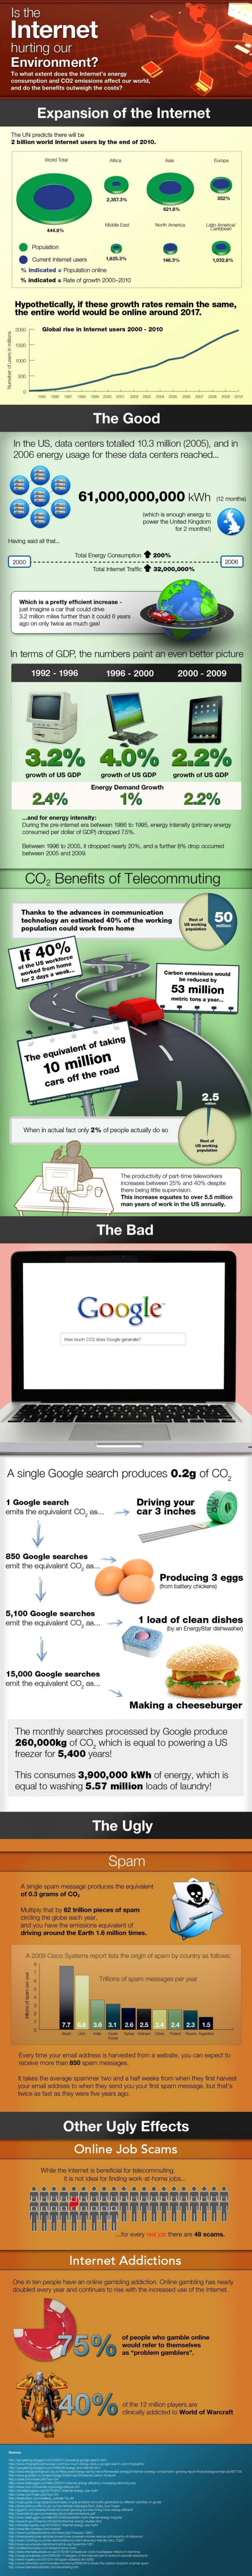 Is the Internet Hurting Our Environment? Infographic